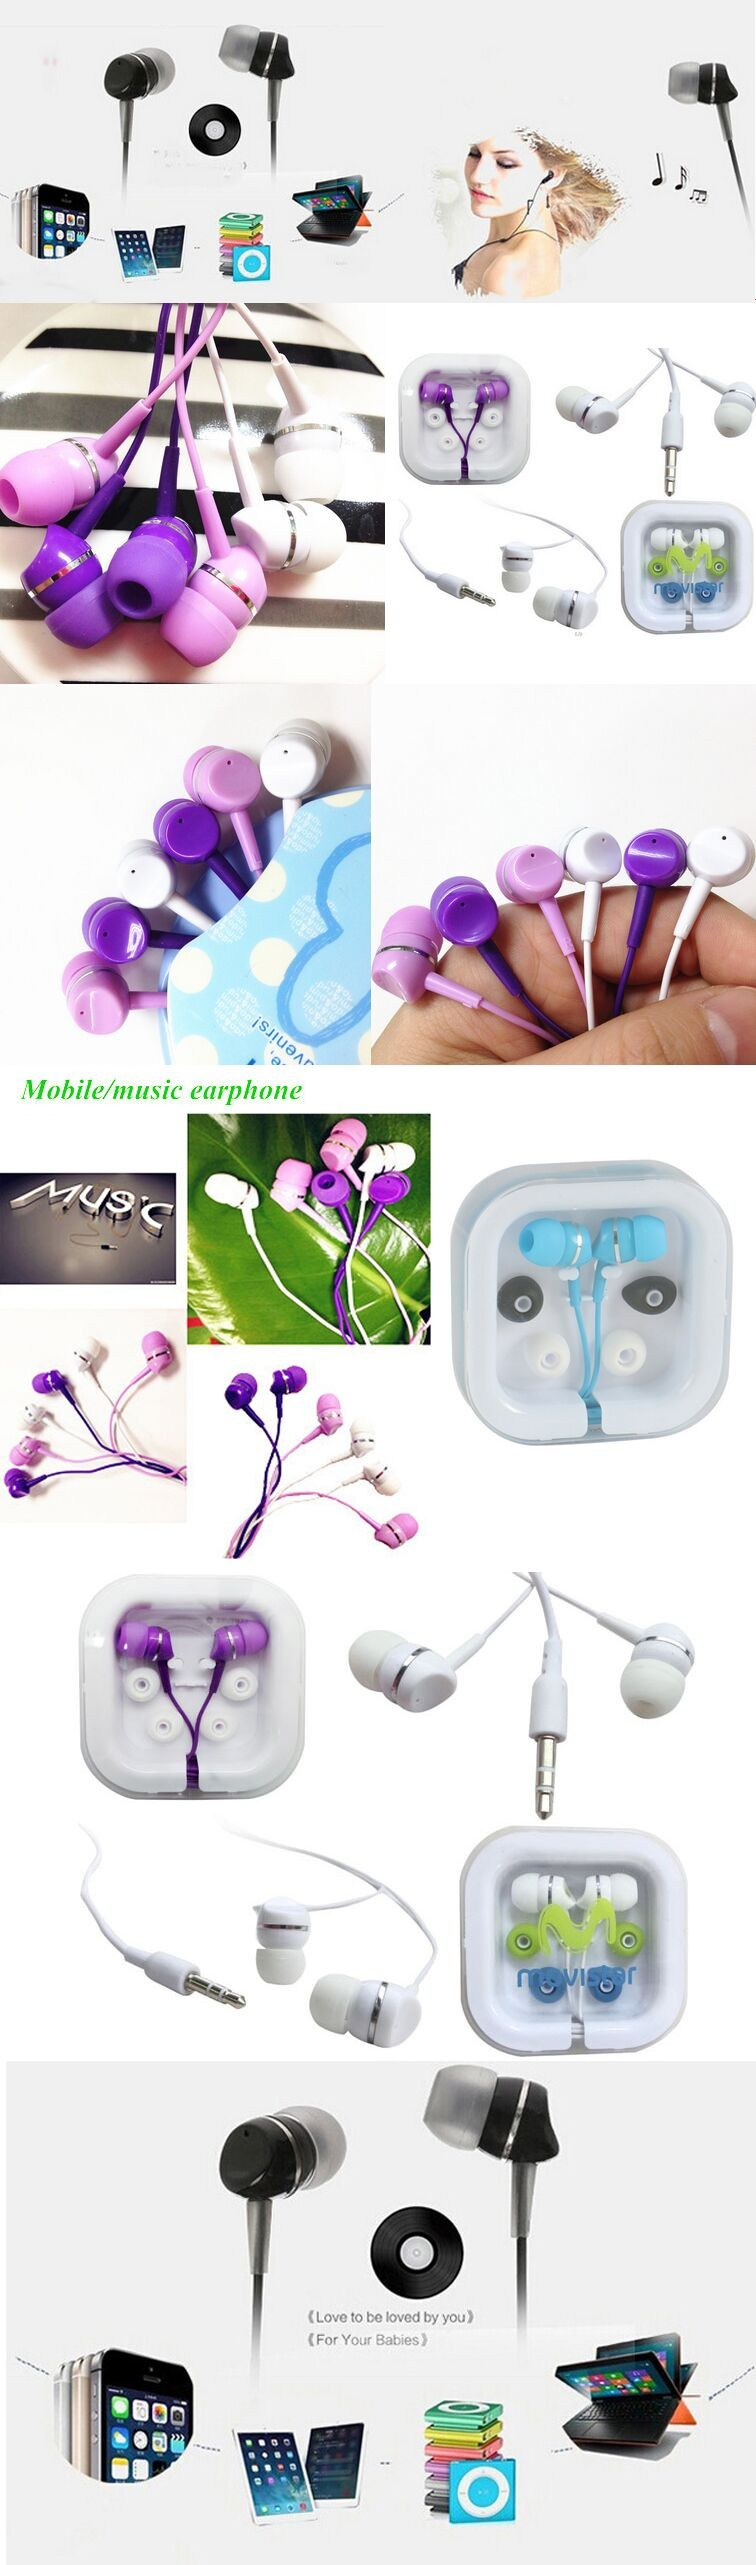 Feminine Headphones